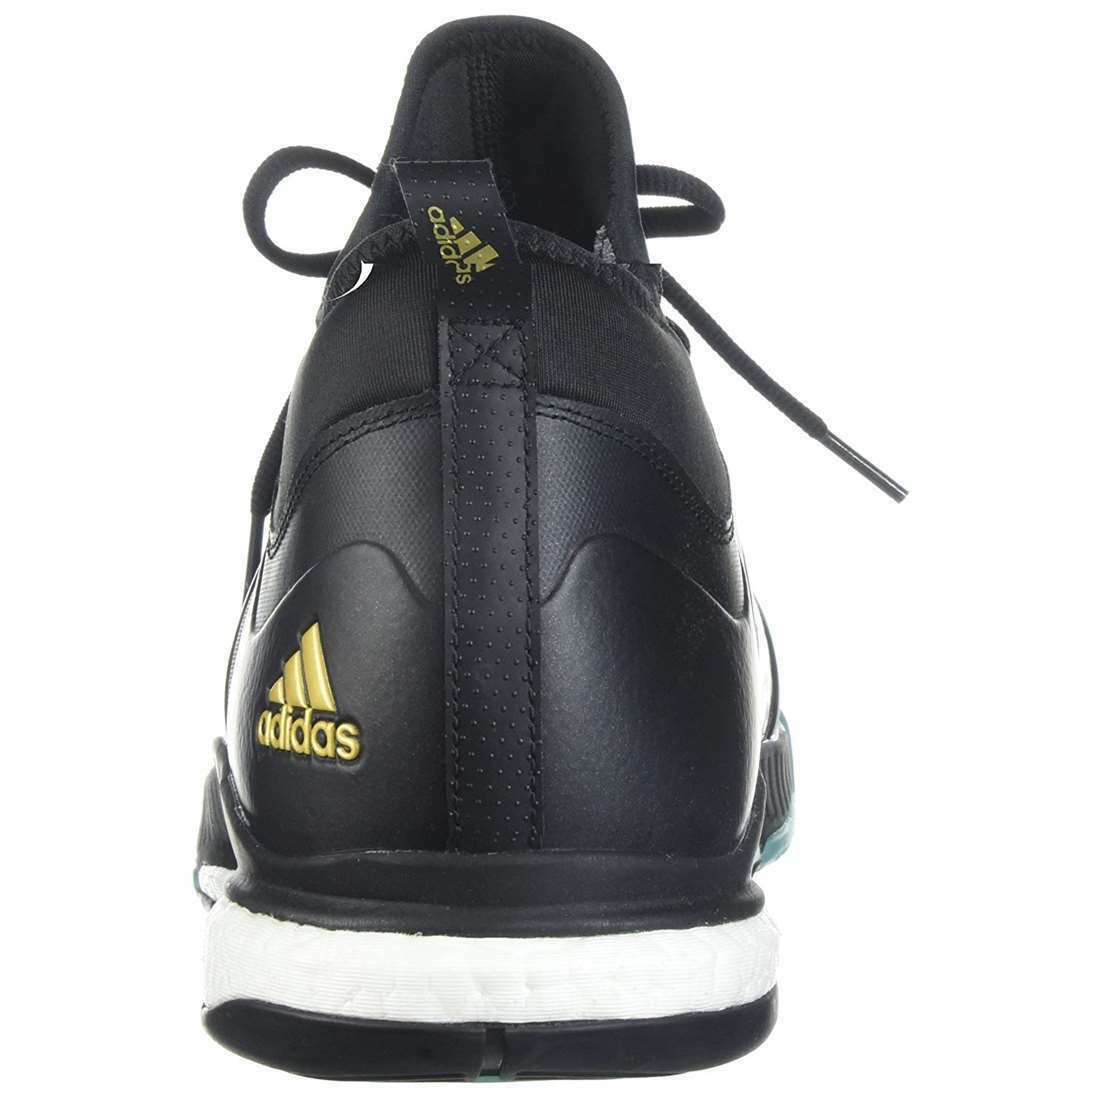 adidas Men's Crazyflight X Mid Volleyball Shoes NEW Athletic Sneakers